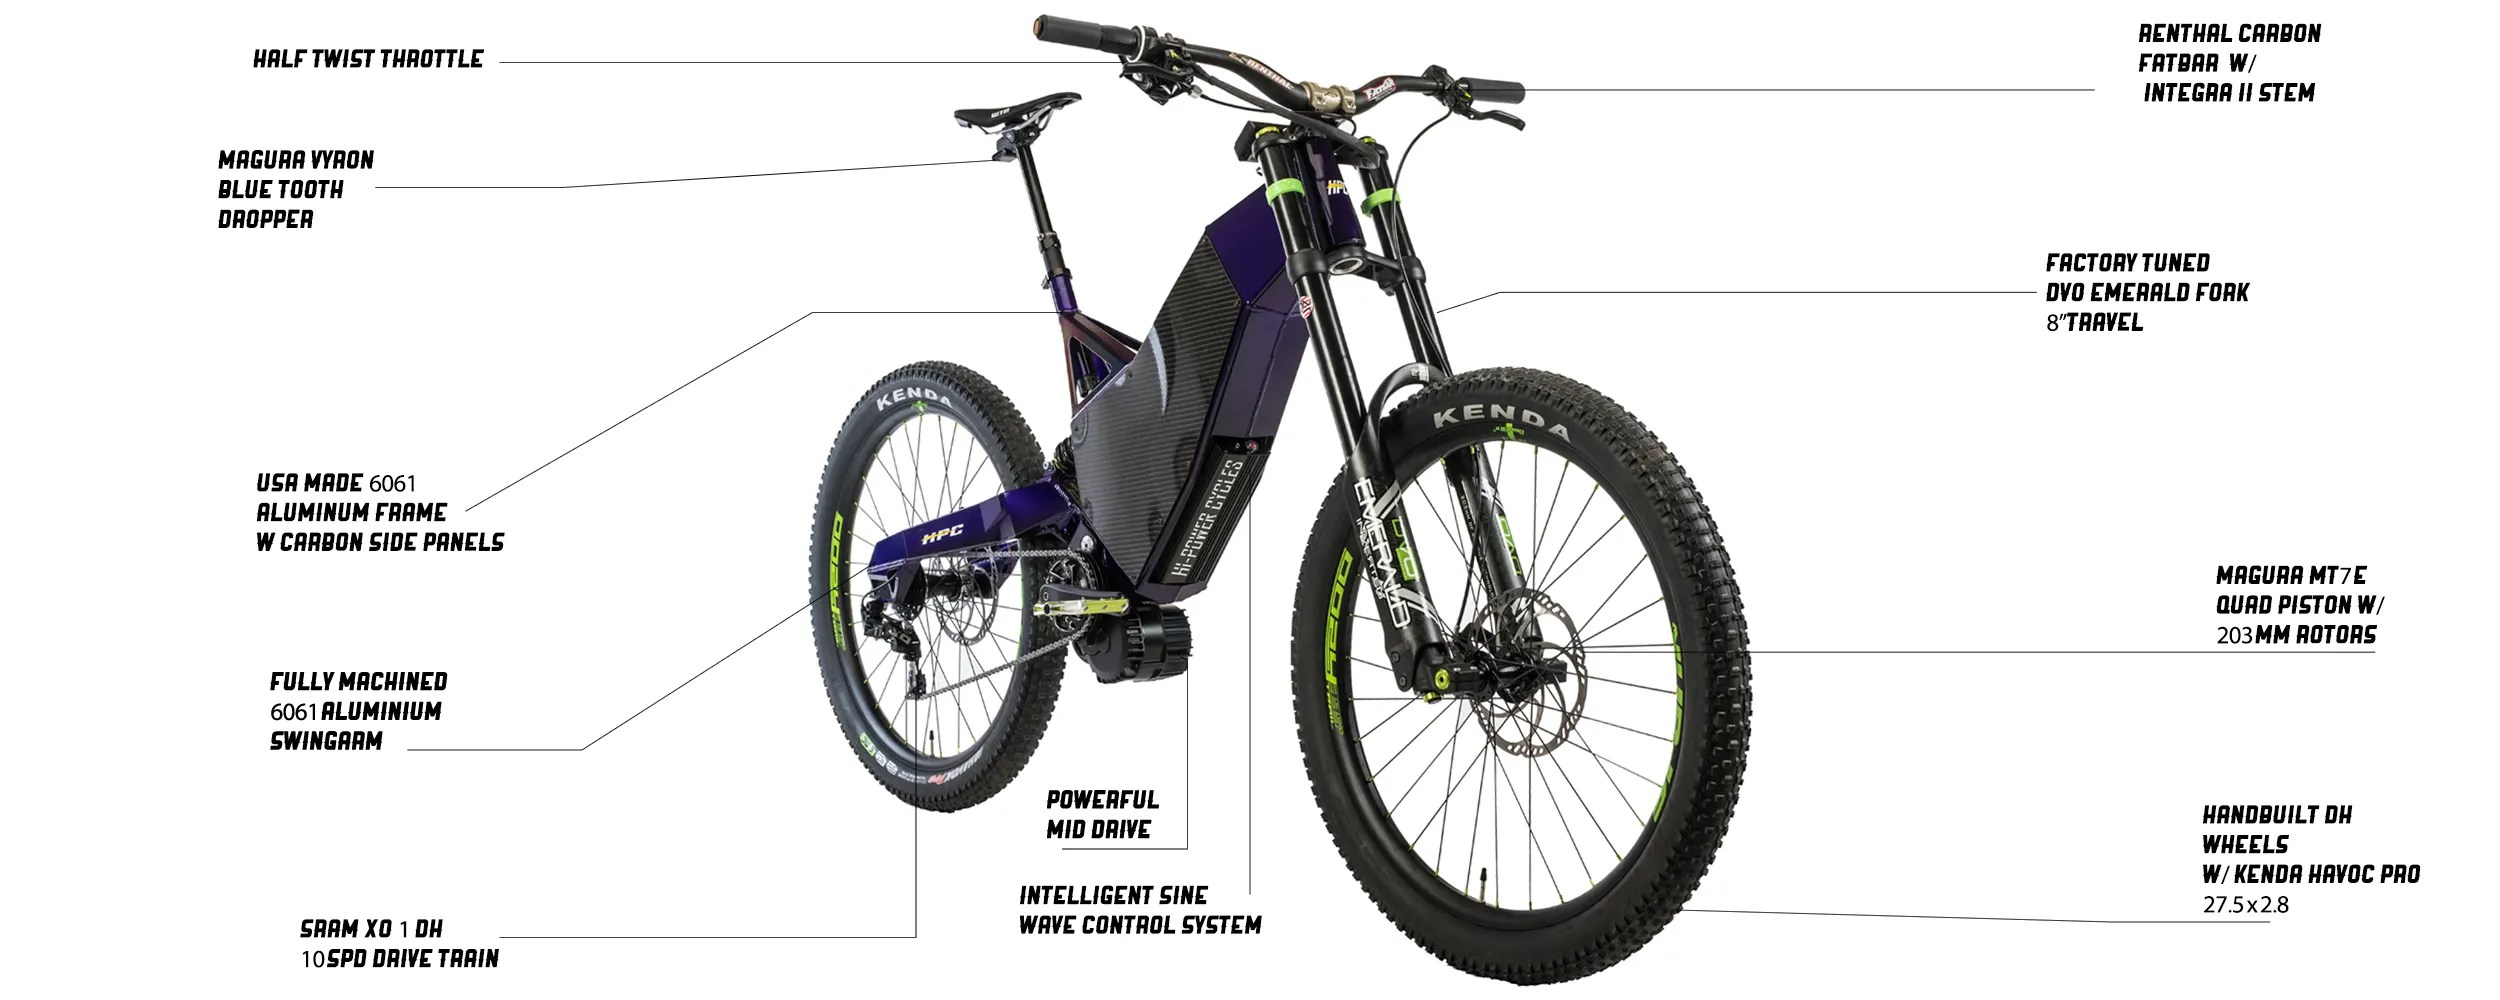 E Full In Revolution M Pro The Ultimate Downhill E Bike Hi Power Cycles